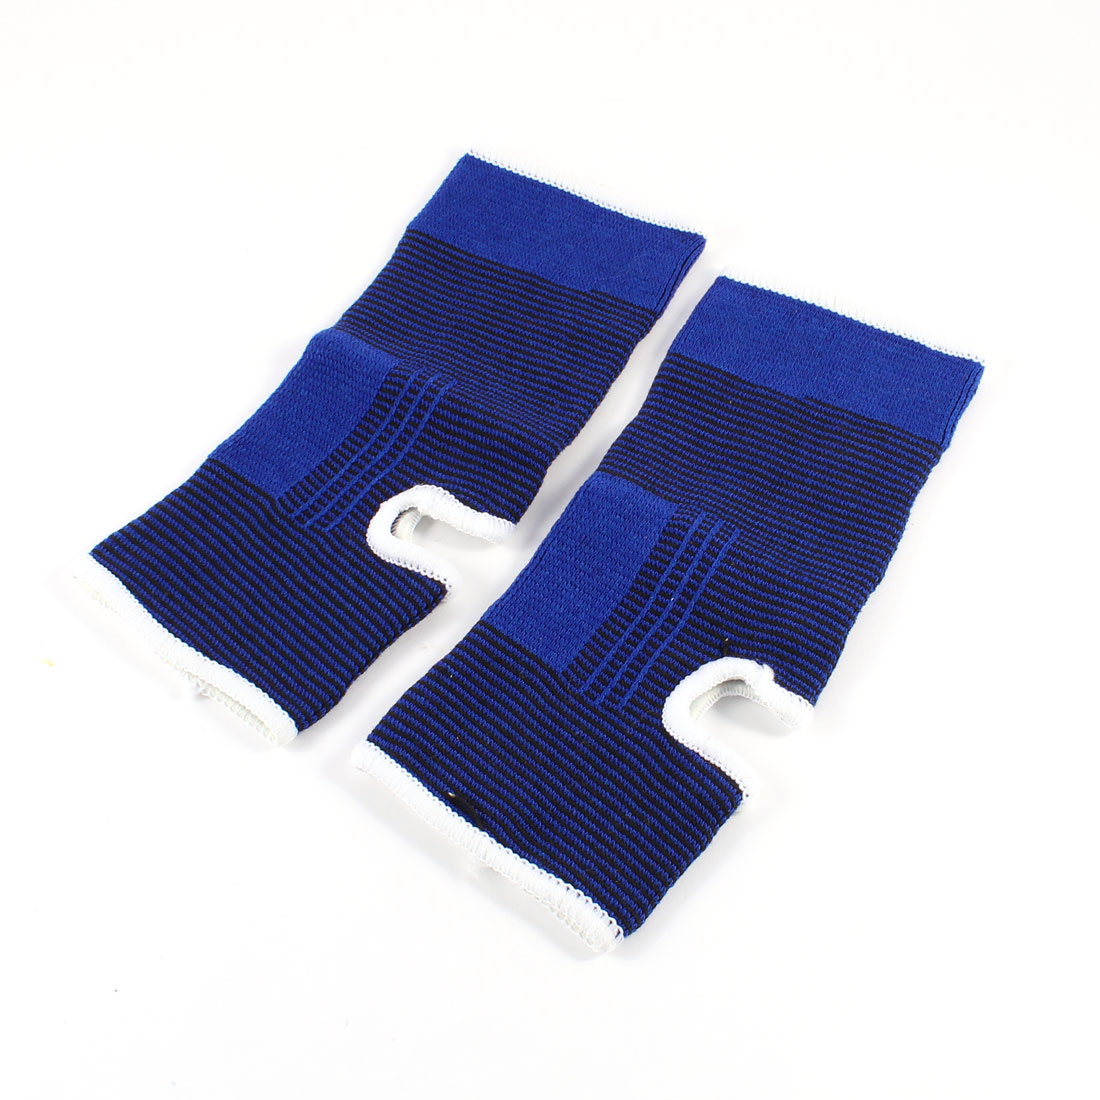 2 Pcs Blue Elastic Fabric Cotton Blend Band Wrist Palm Support Protector